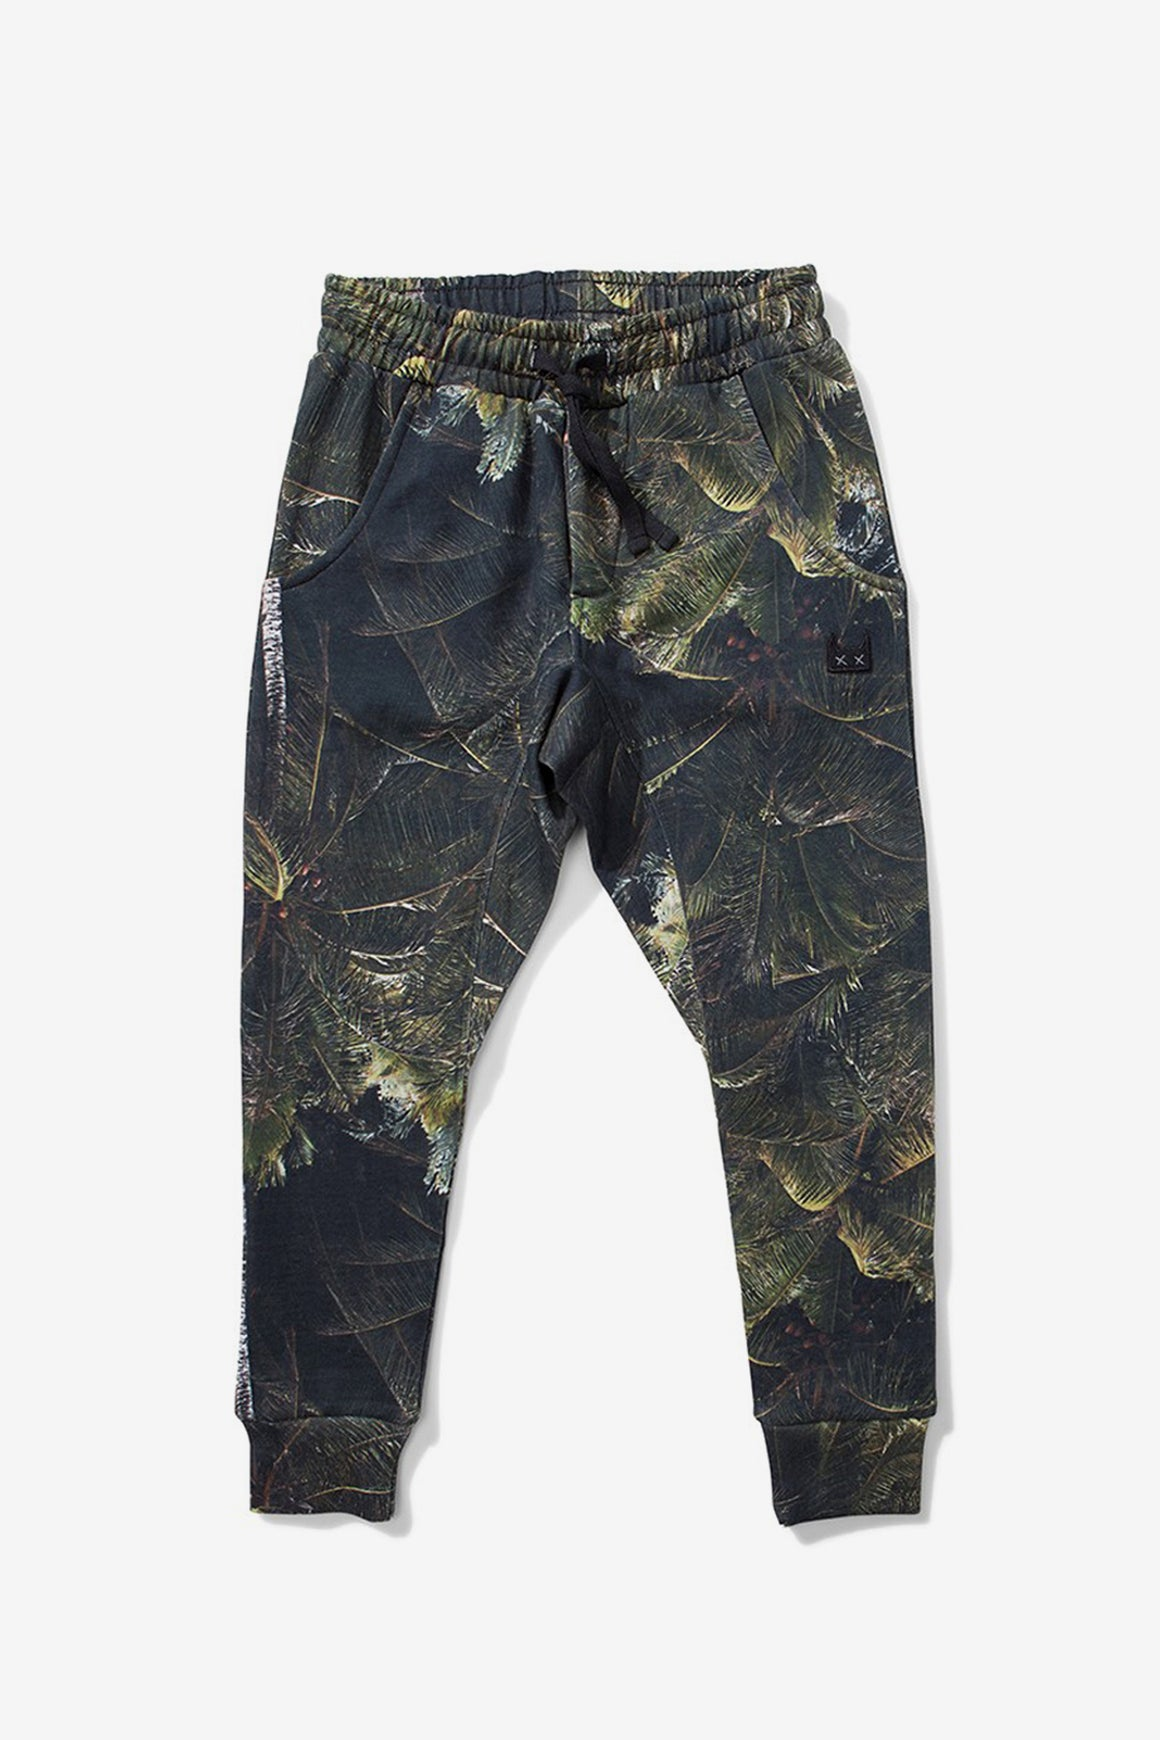 Munster Kids Wild Things Pant